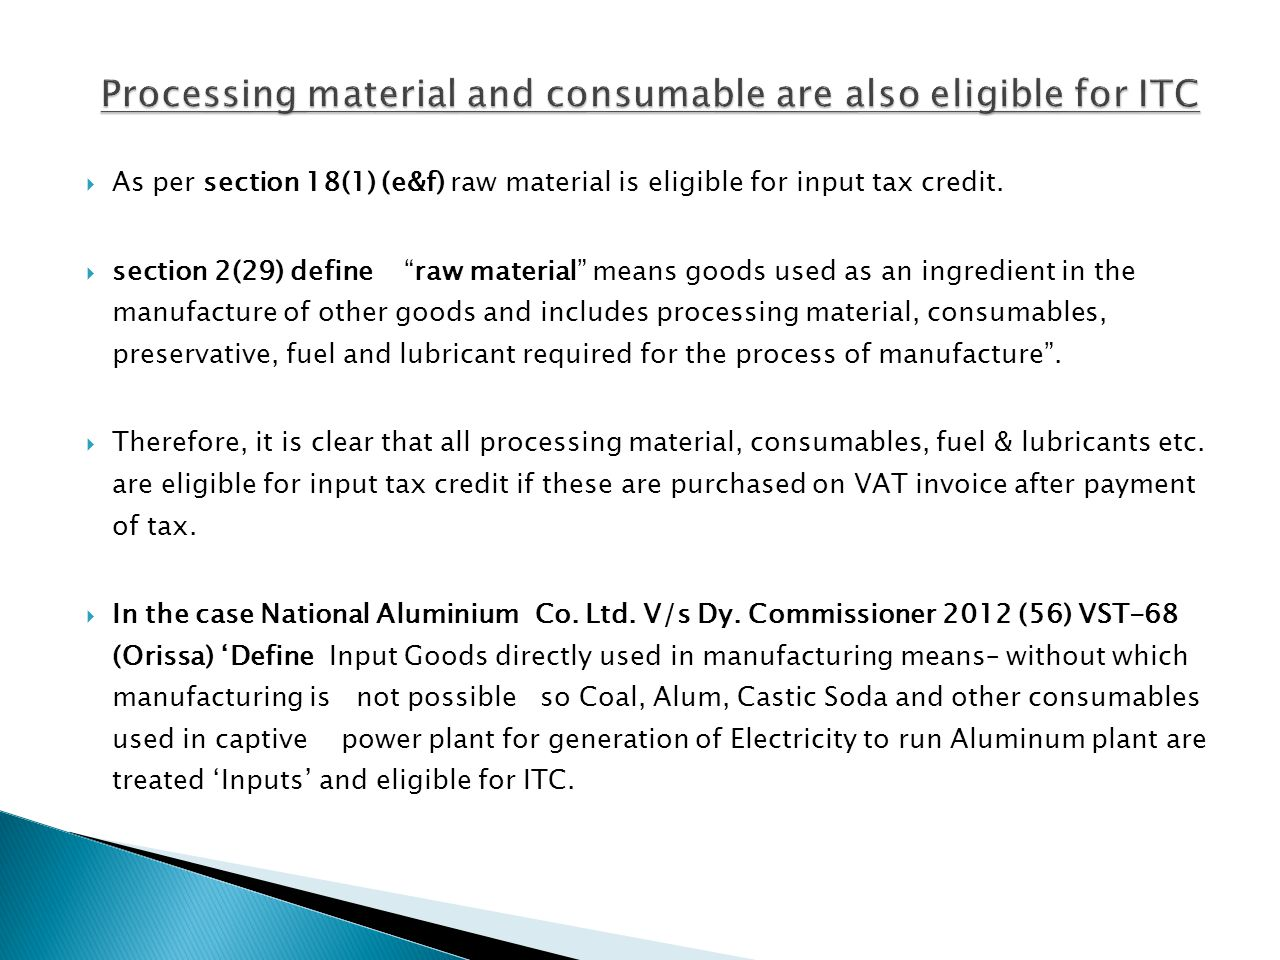 As per section 18(1) (e&f) raw material is eligible for input tax credit.